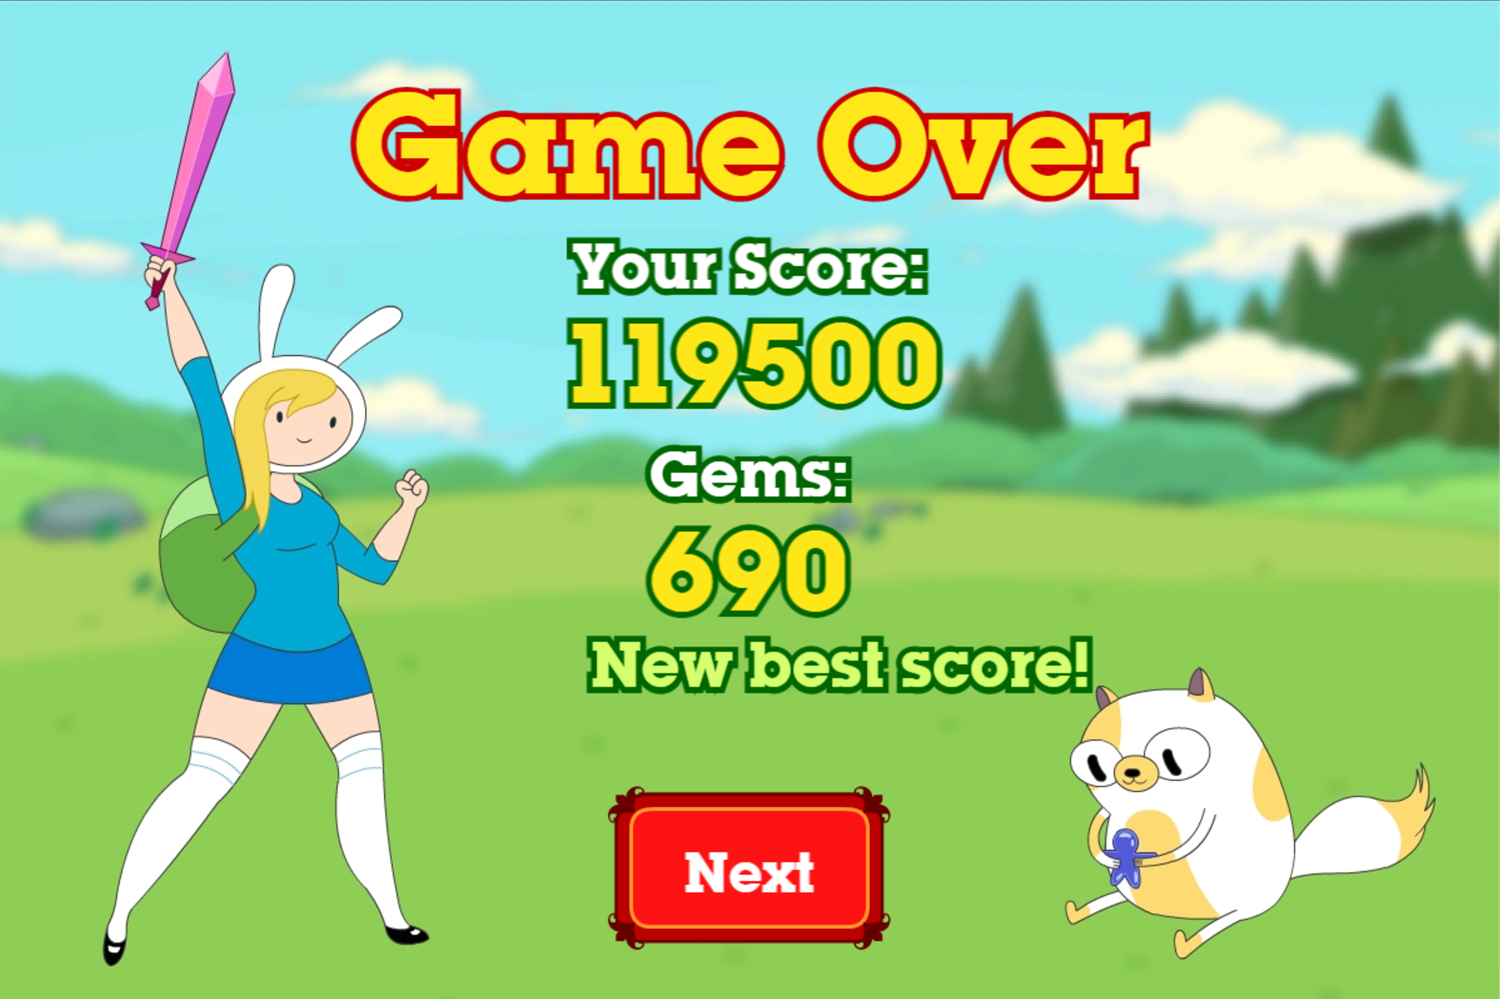 Adventure Time Fiona Fights Game Over Screenshot.